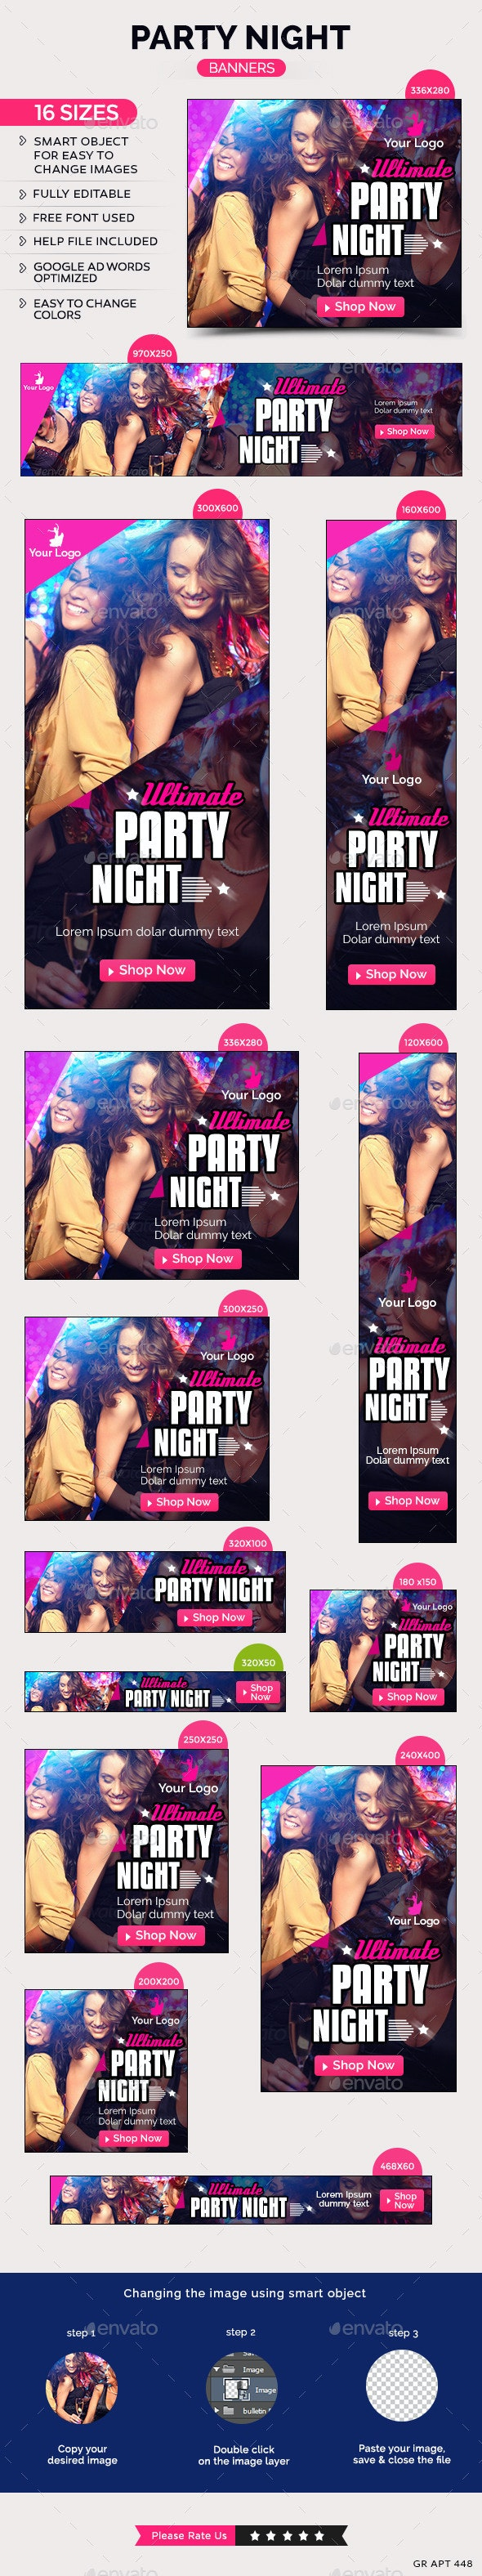 Party Night Banners - Banners & Ads Web Elements